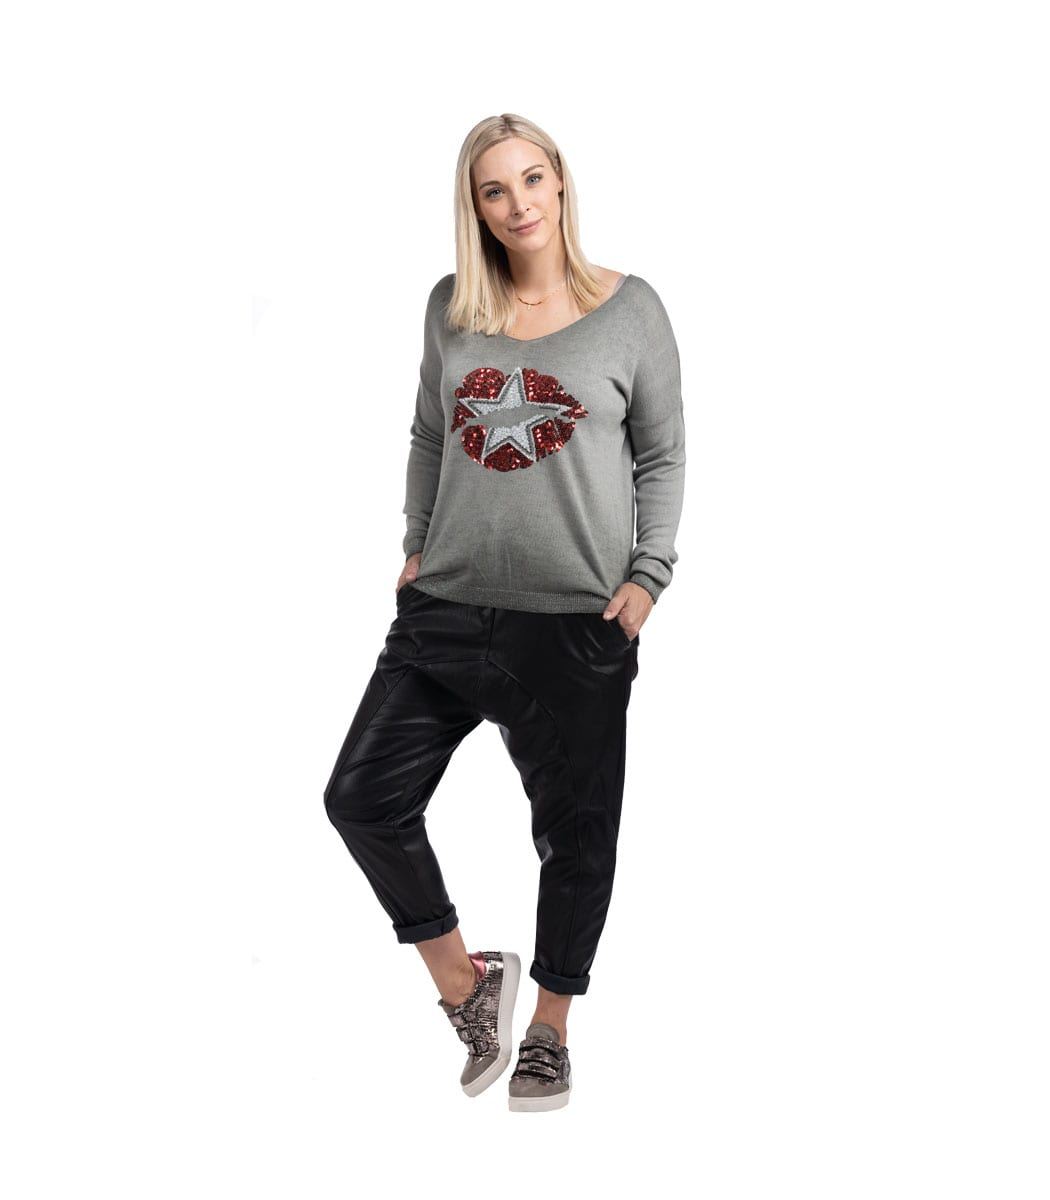 Sequin lips star print knit top